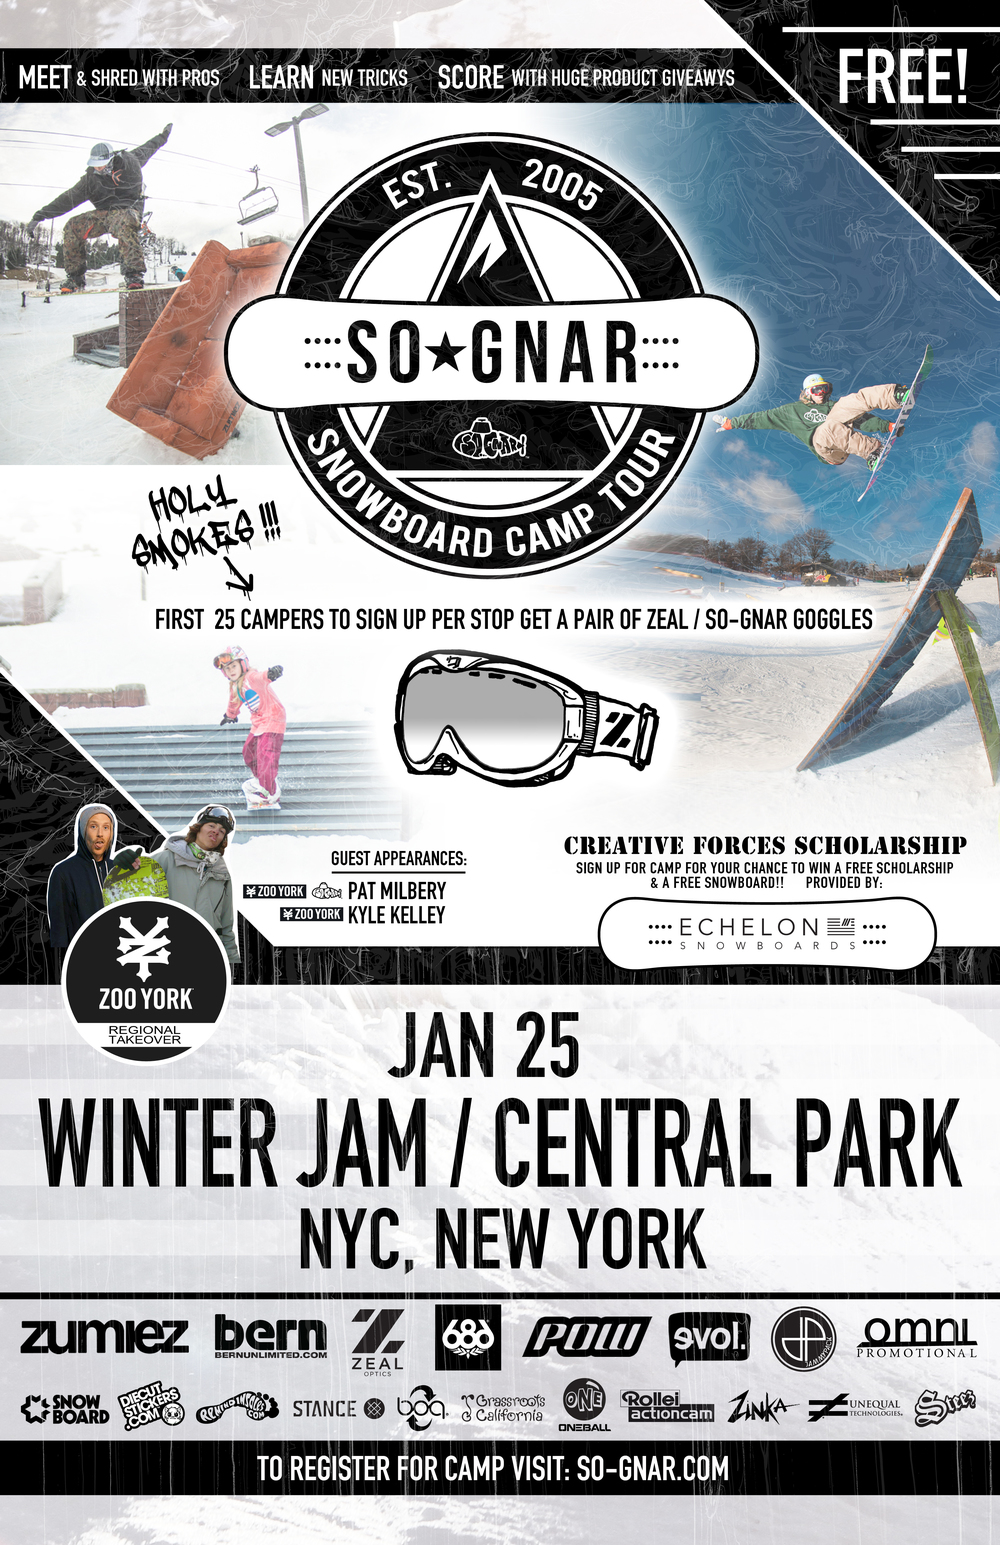 Sheets_edit_SNOWBOARD_CAMP_TOUR_poster_2013-14_NYC.jpg